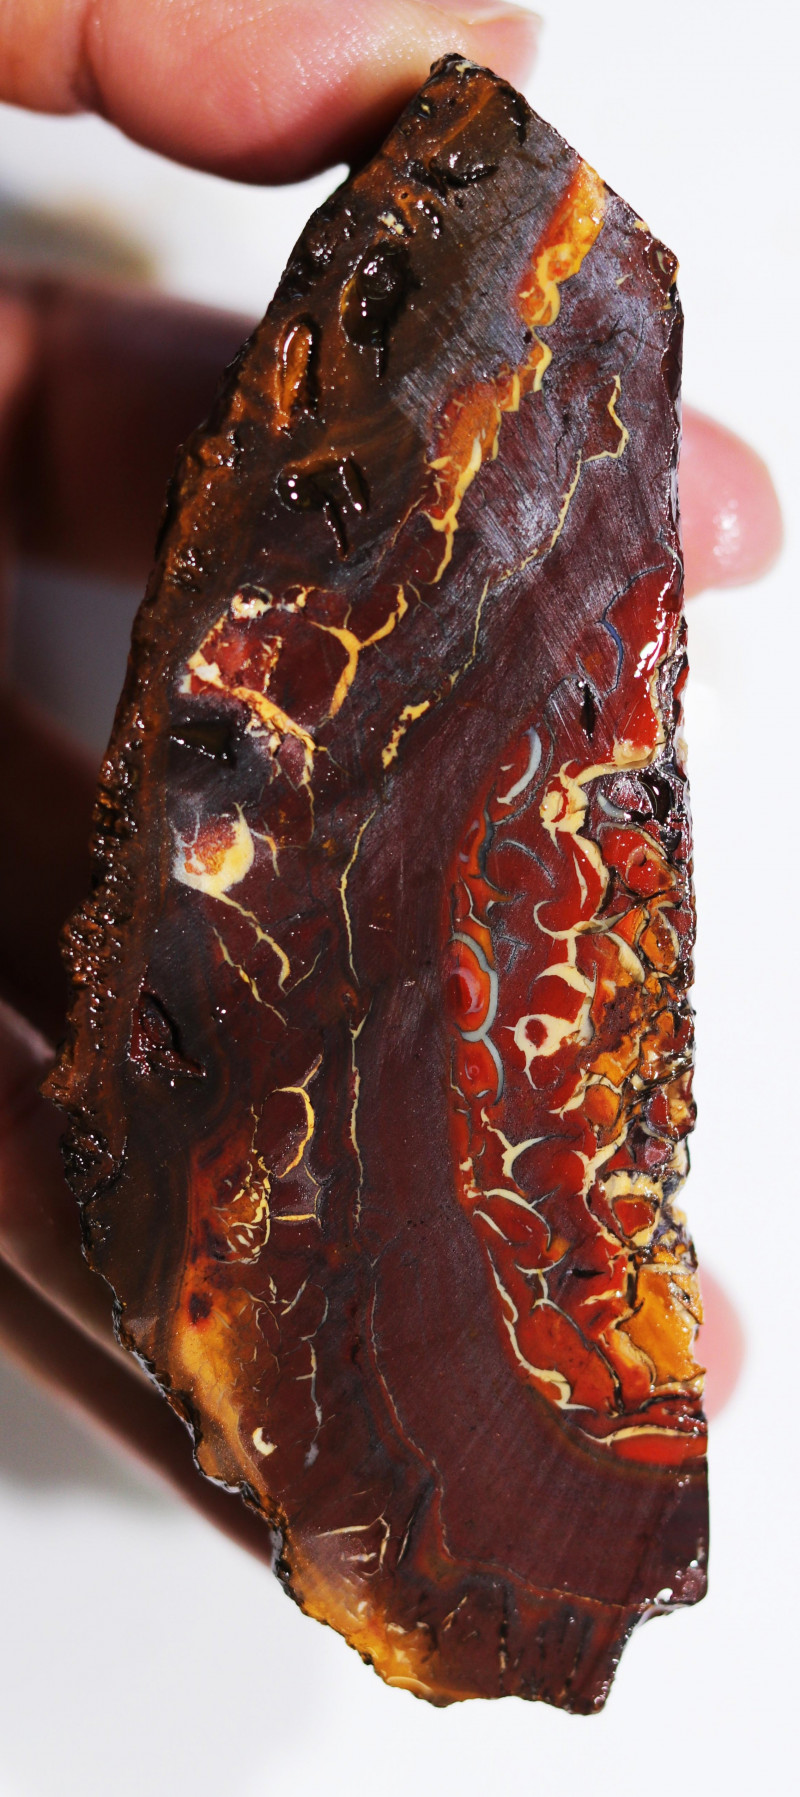 802.80 CTS CHOCOLATE IRONSTONE WITH WHITE OPAL[BY8058]